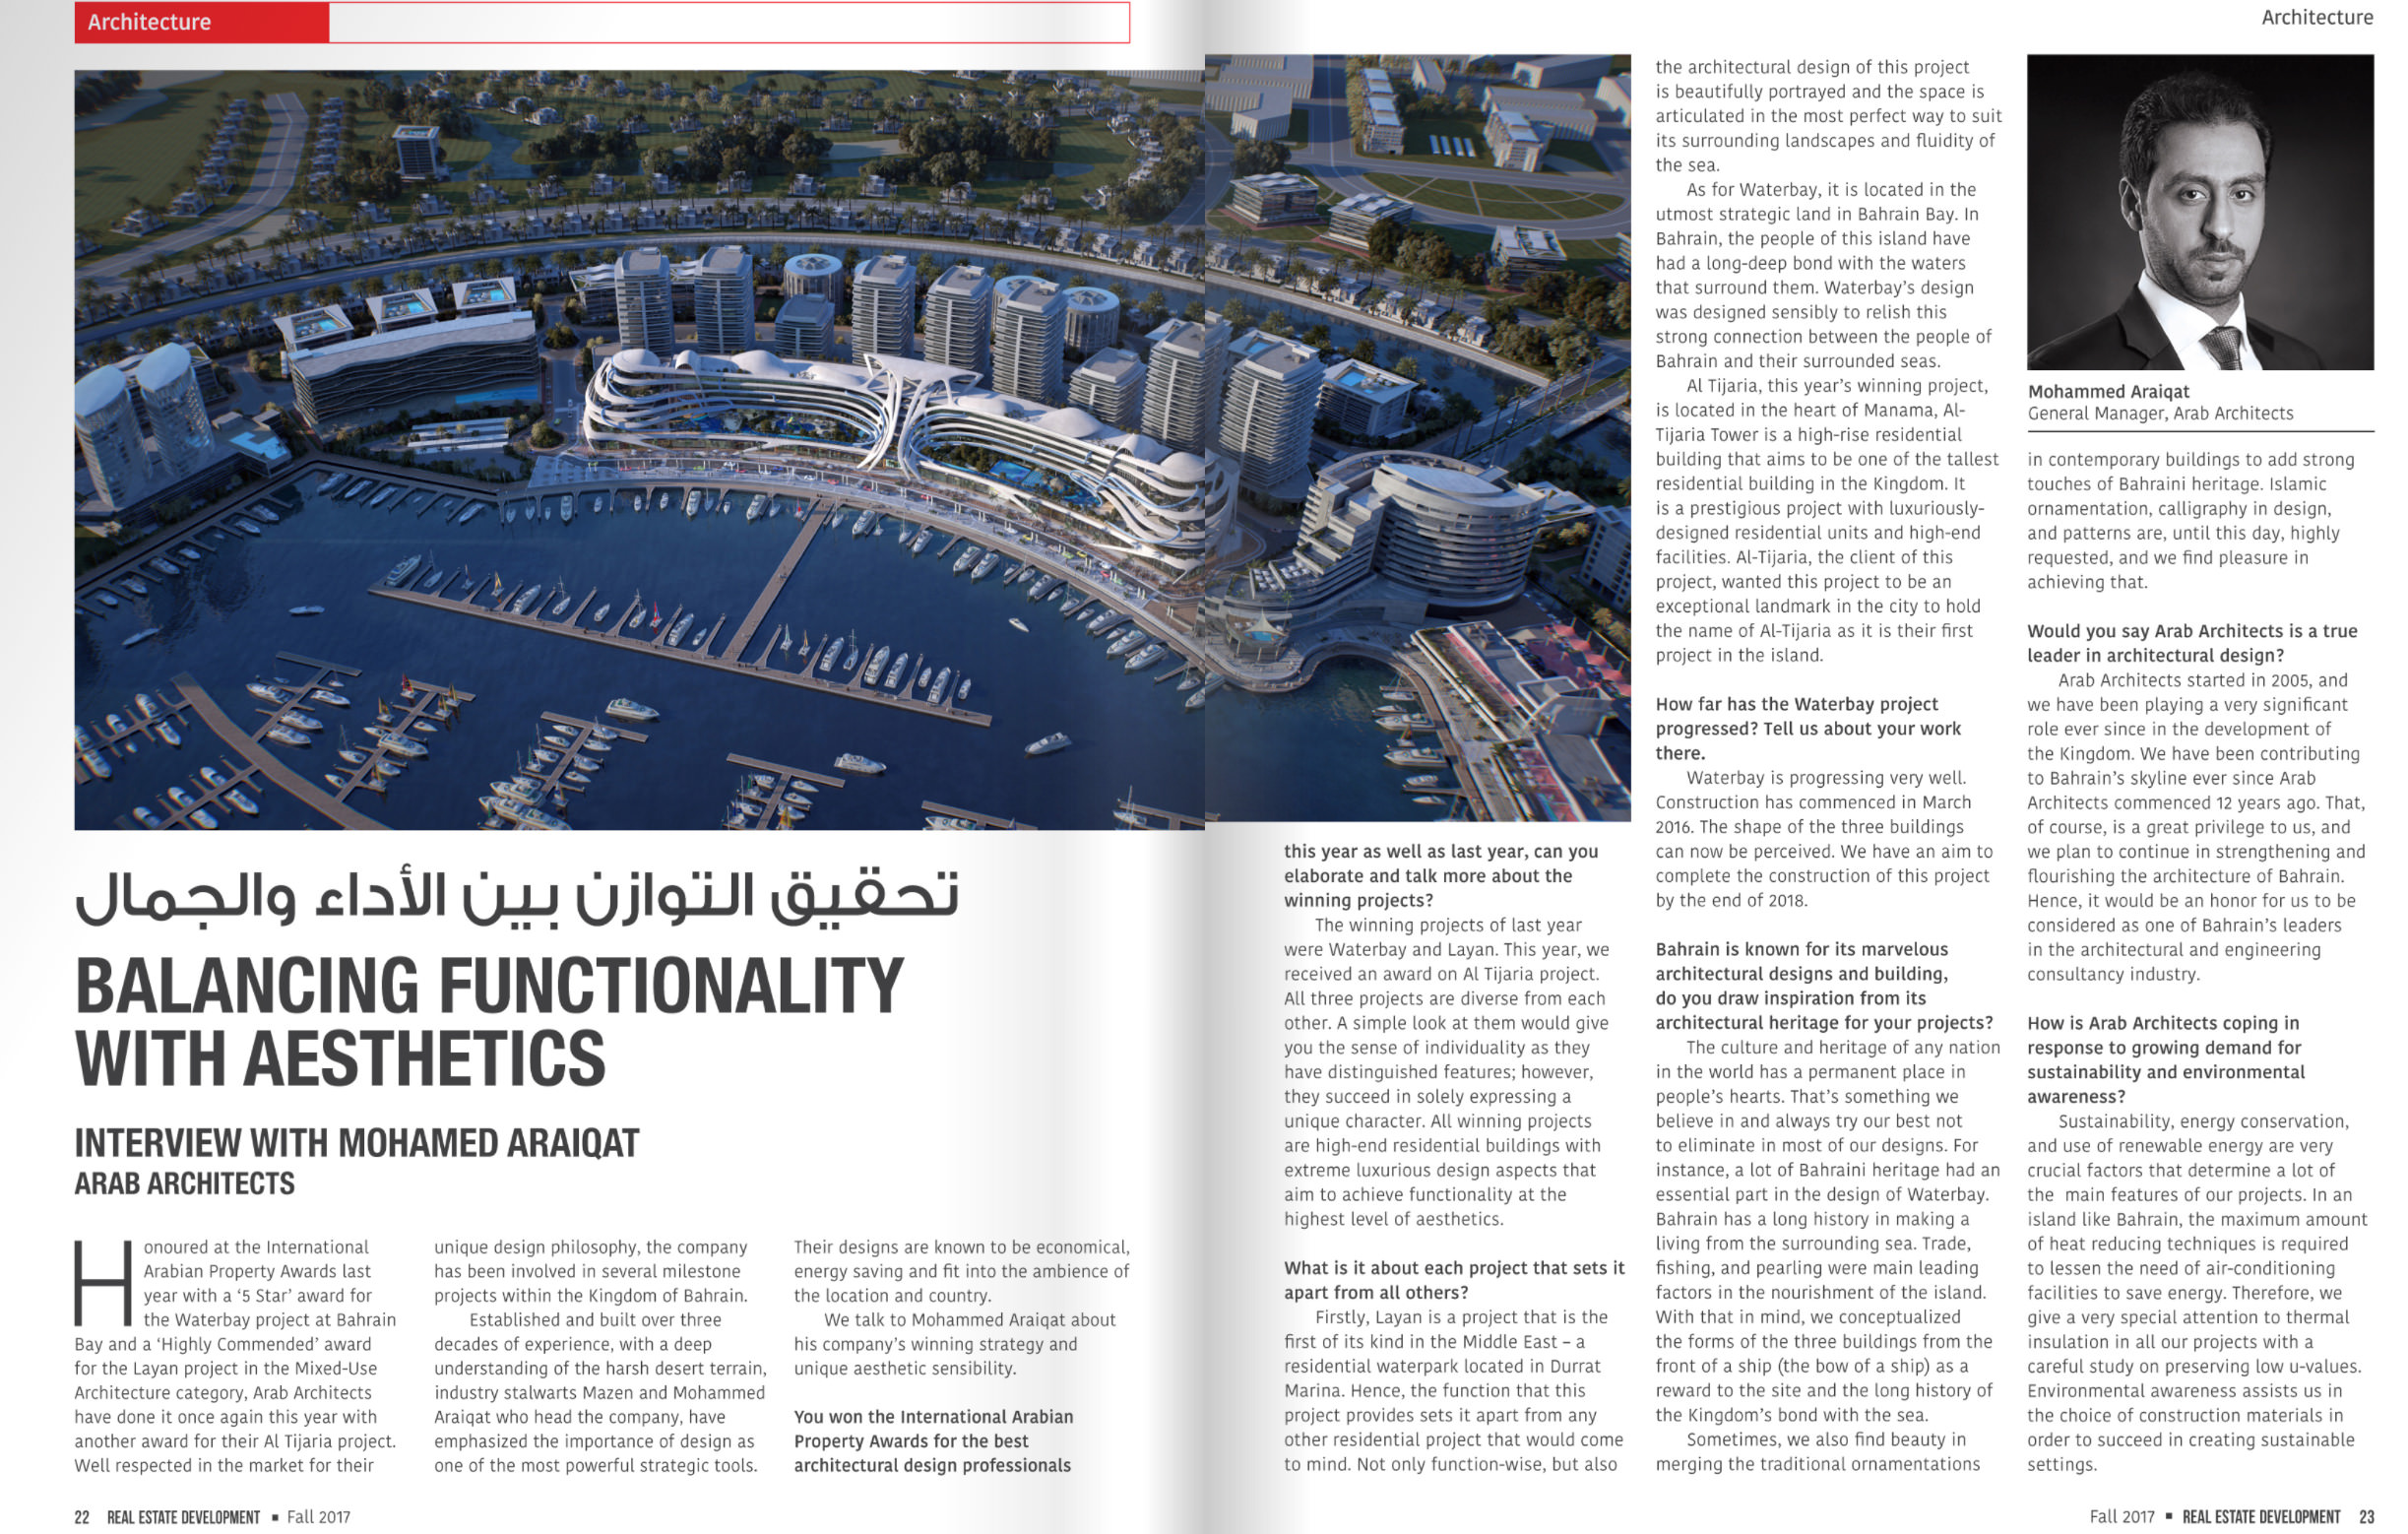 Balancing Functionality with Aesthetics - Interview with Arab Architects' General Manager